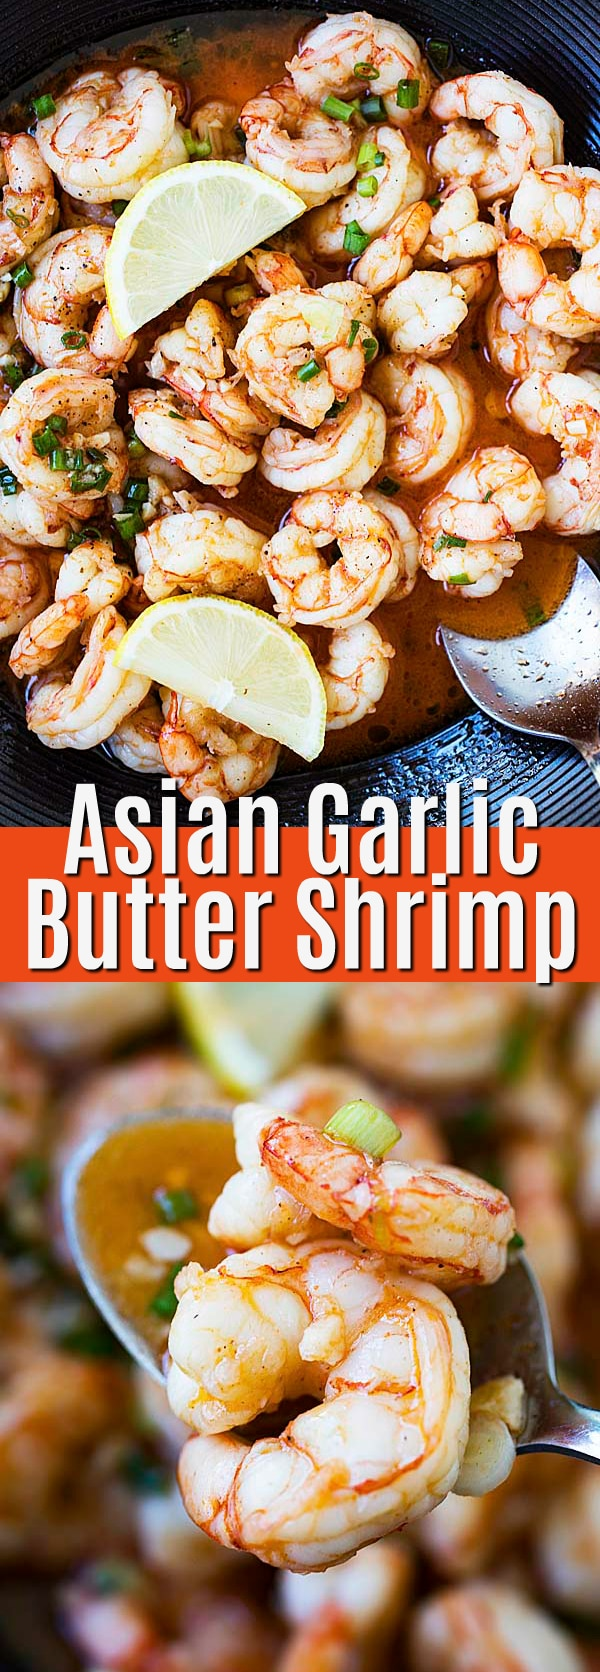 Asian Garlic Butter Shrimp - sauteed shrimp with garlic and butter, with mouthwatering Asian flavors! This recipe is outrageously delicious and calls for only five basic ingredients.